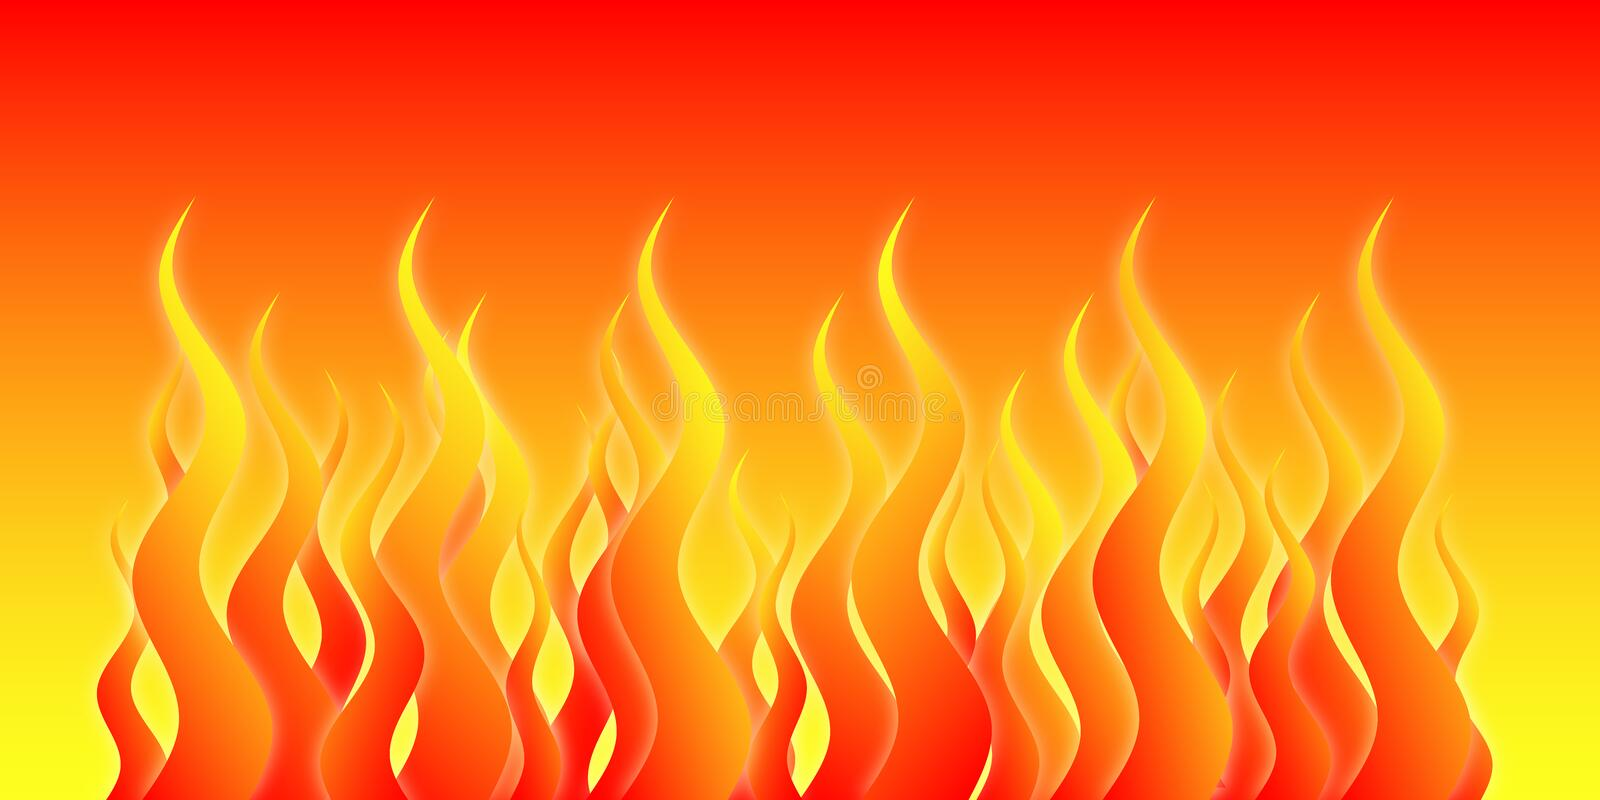 Hell Fire royalty free stock photos